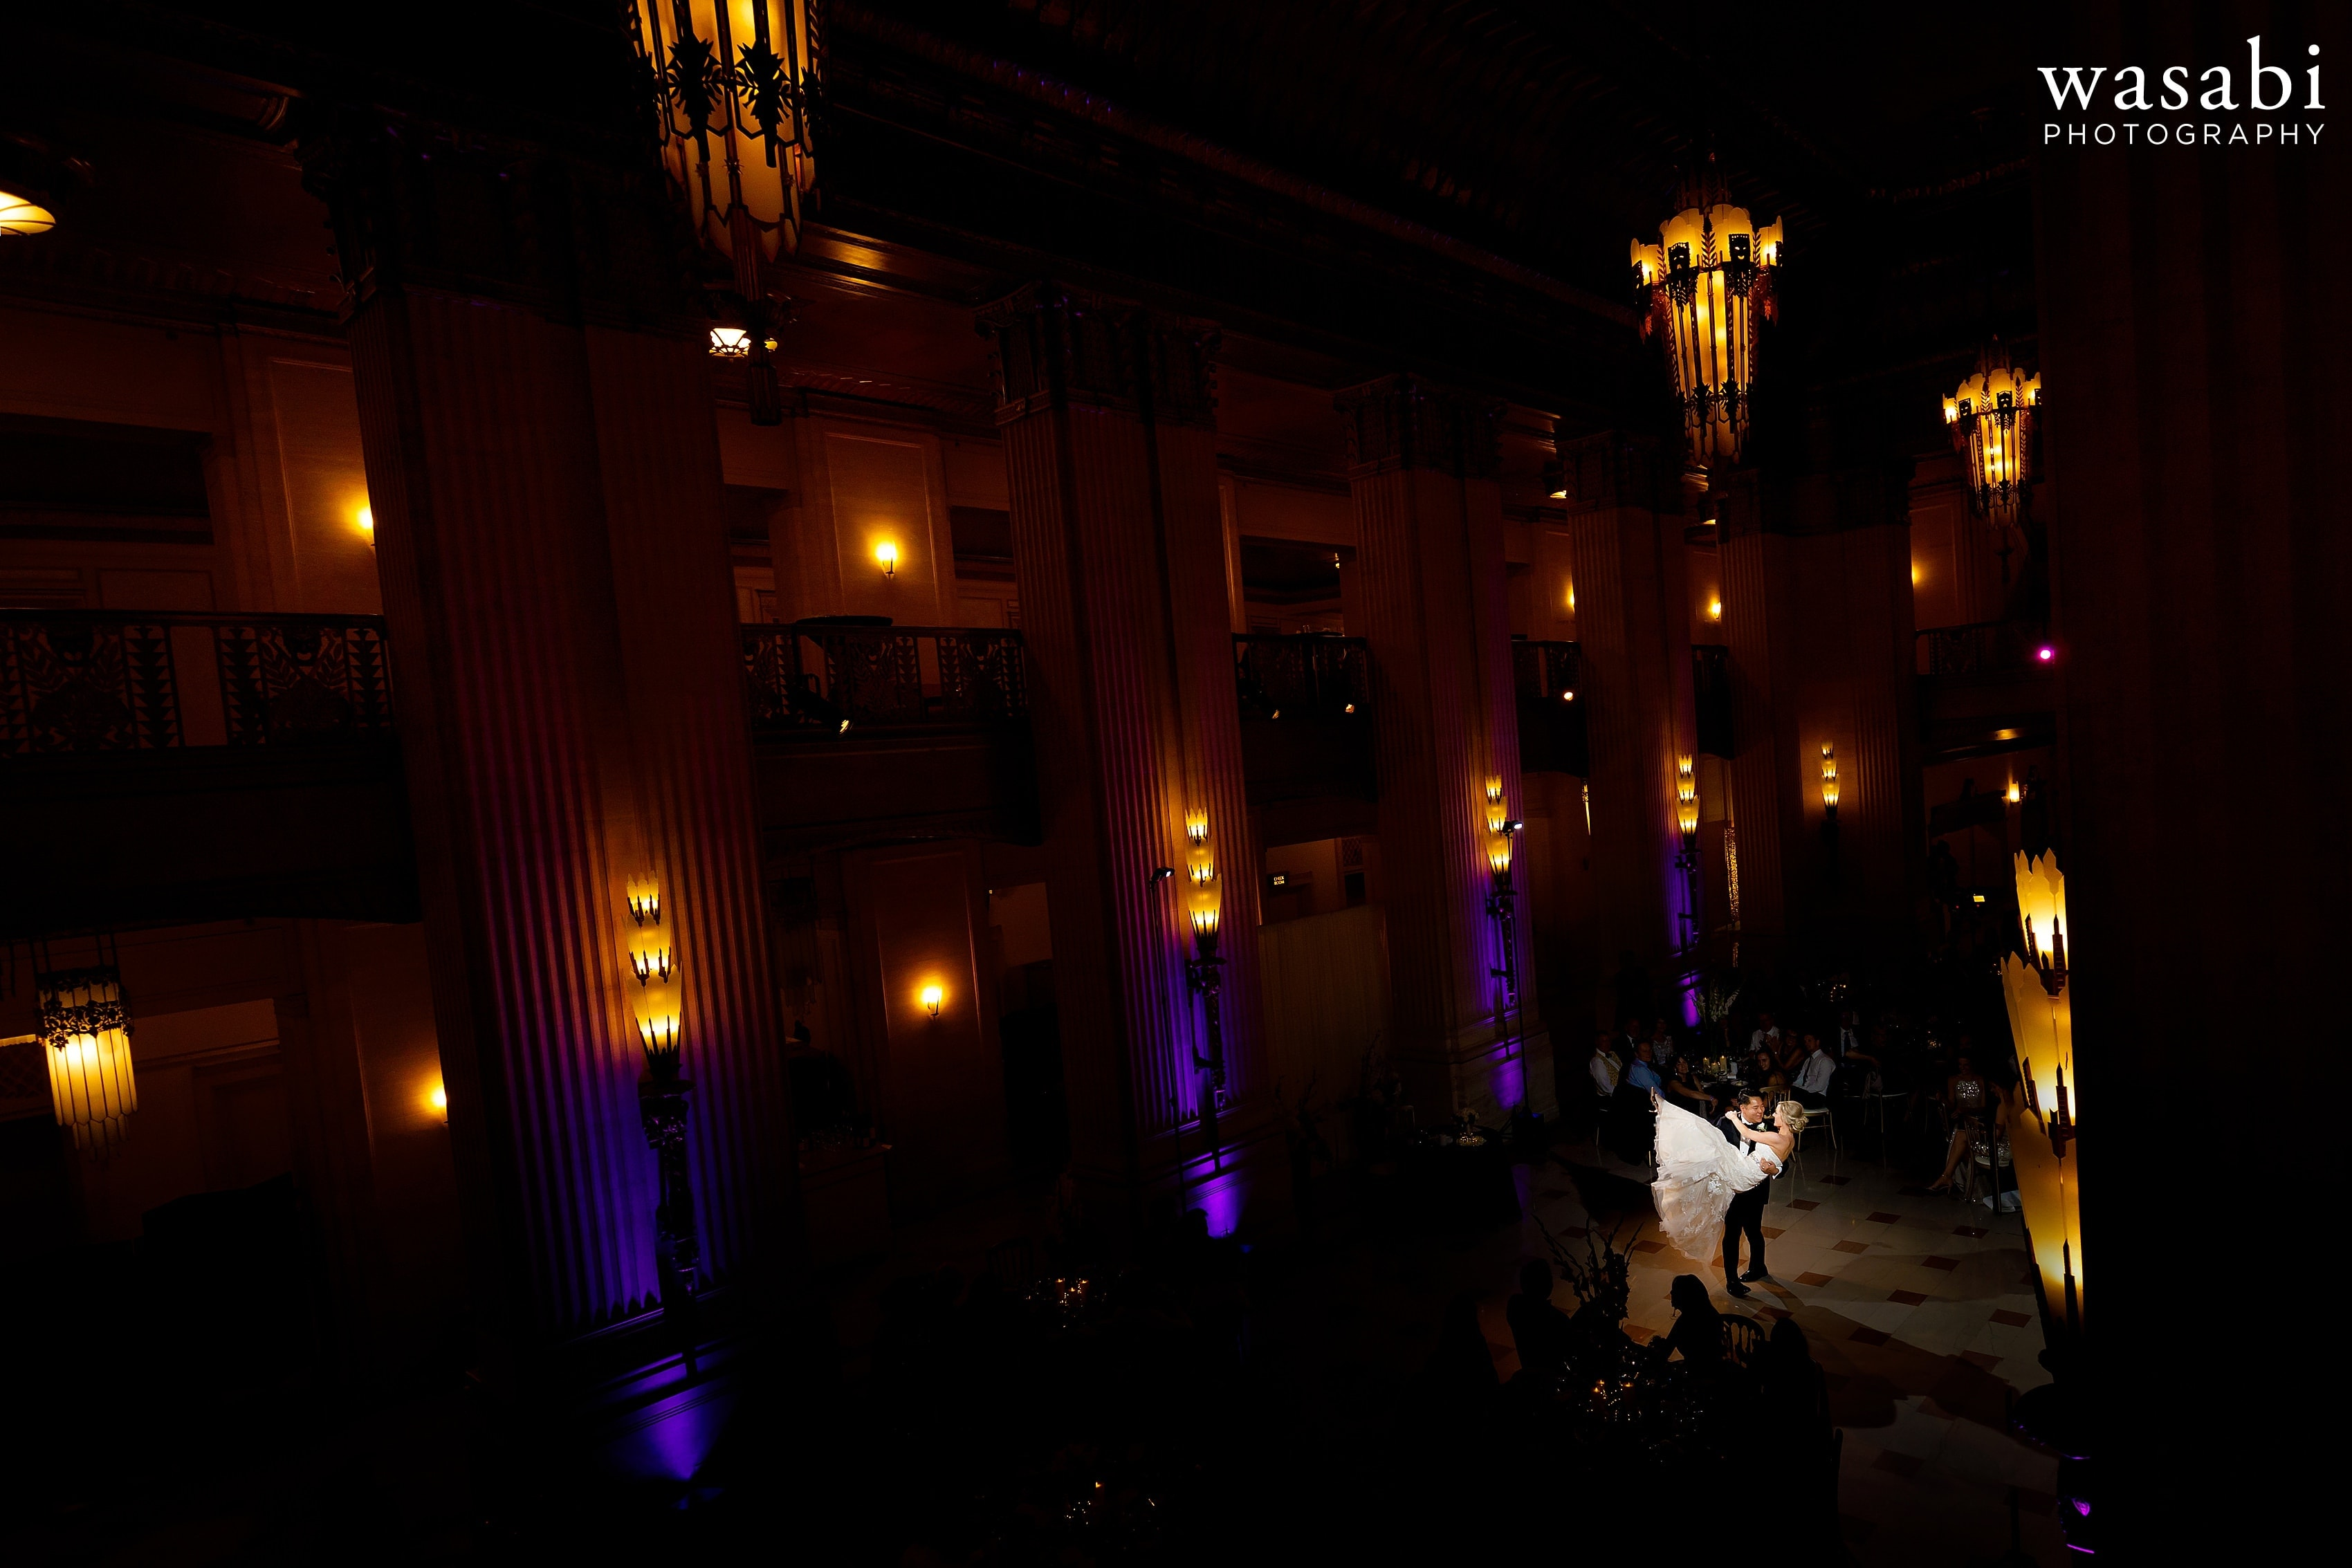 epic wide angle view from upstairs showing the grand lobby during Civic Opera House wedding reception in Chicago